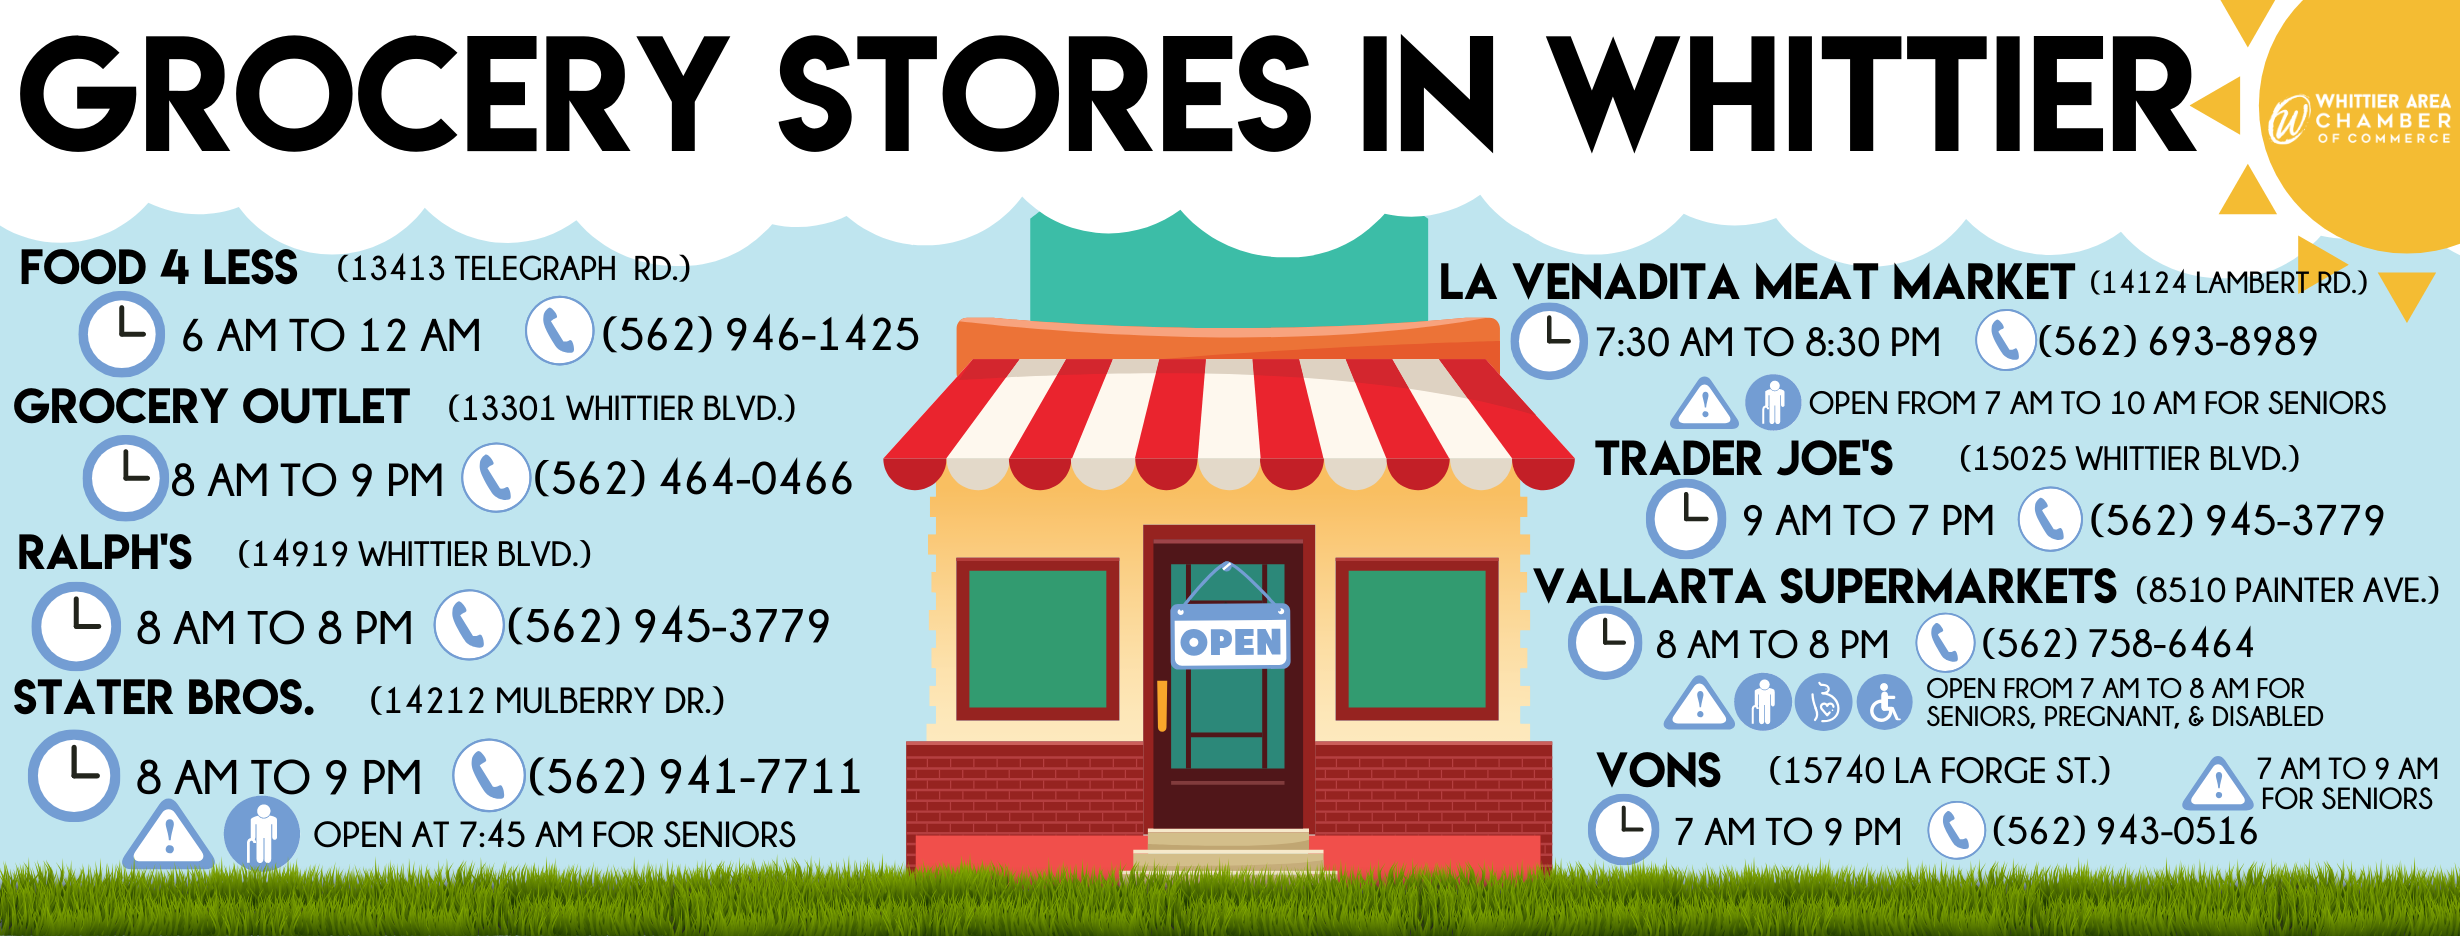 Grocery Stores in Whittier fb post